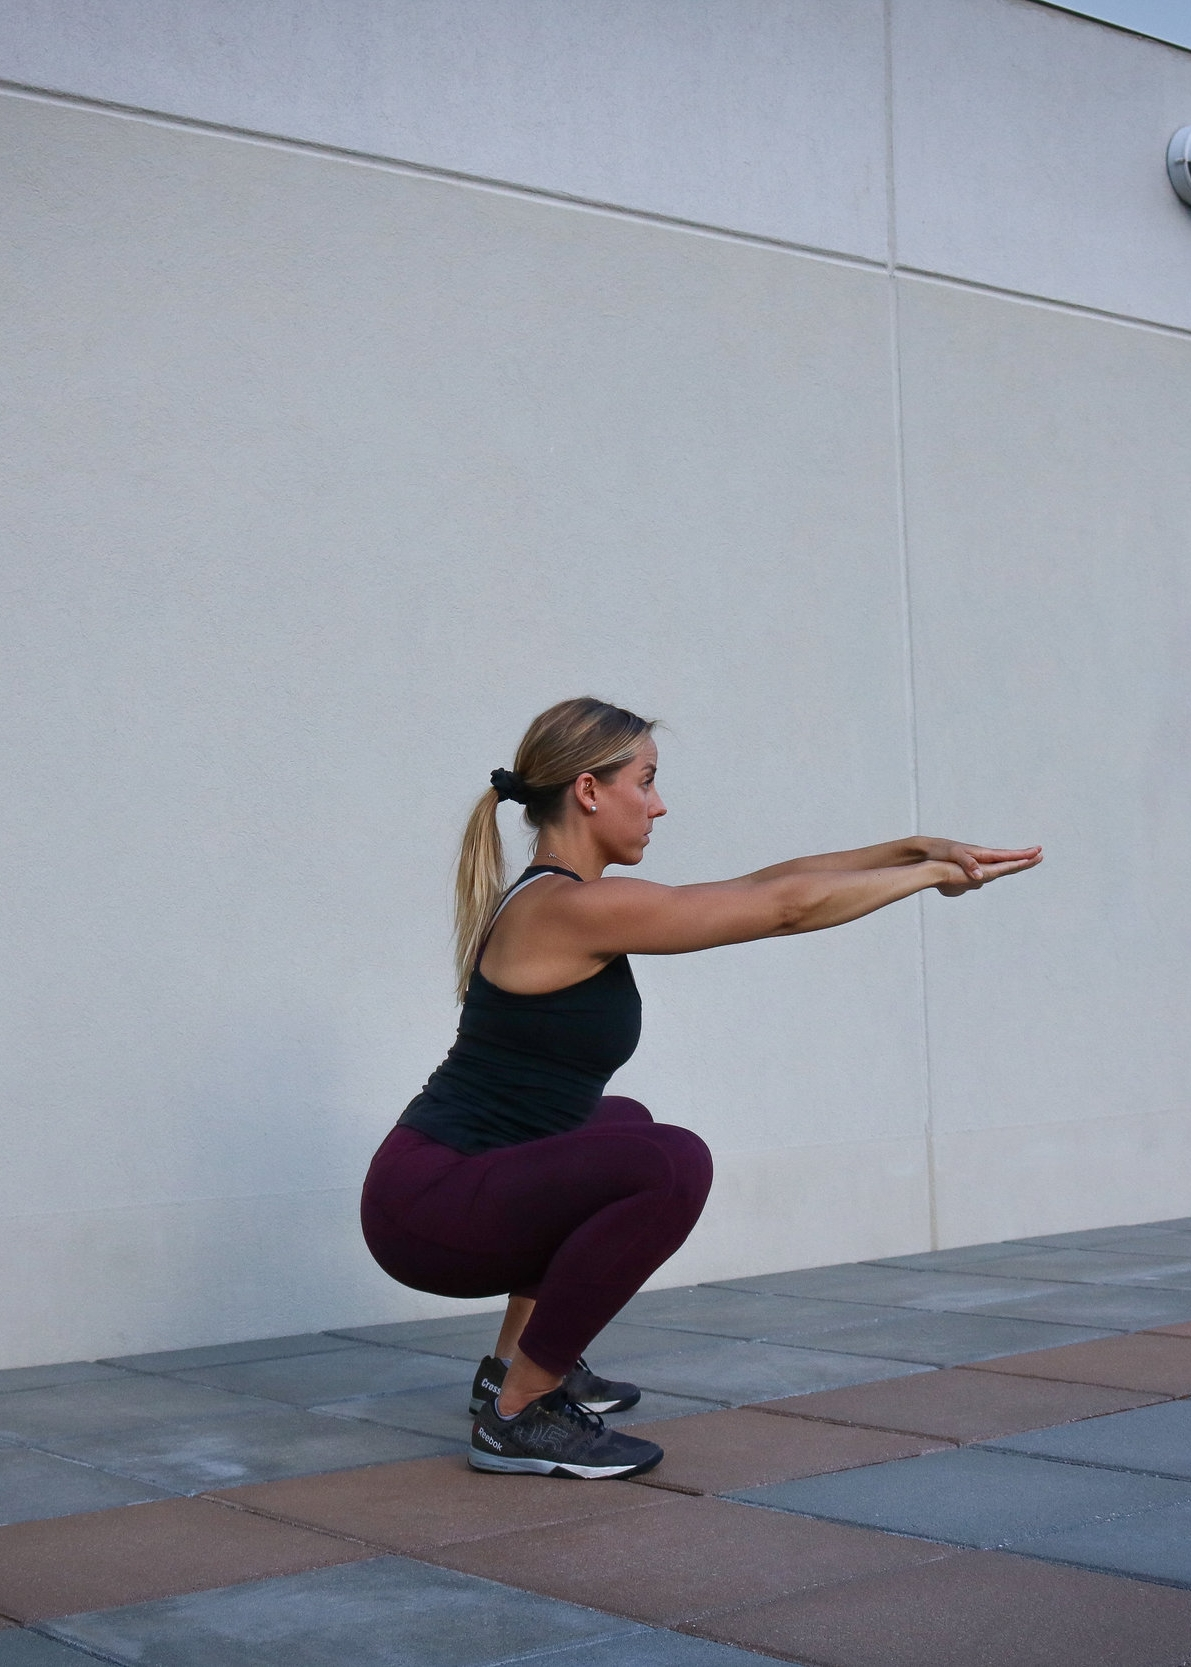 Bottom position of the squat